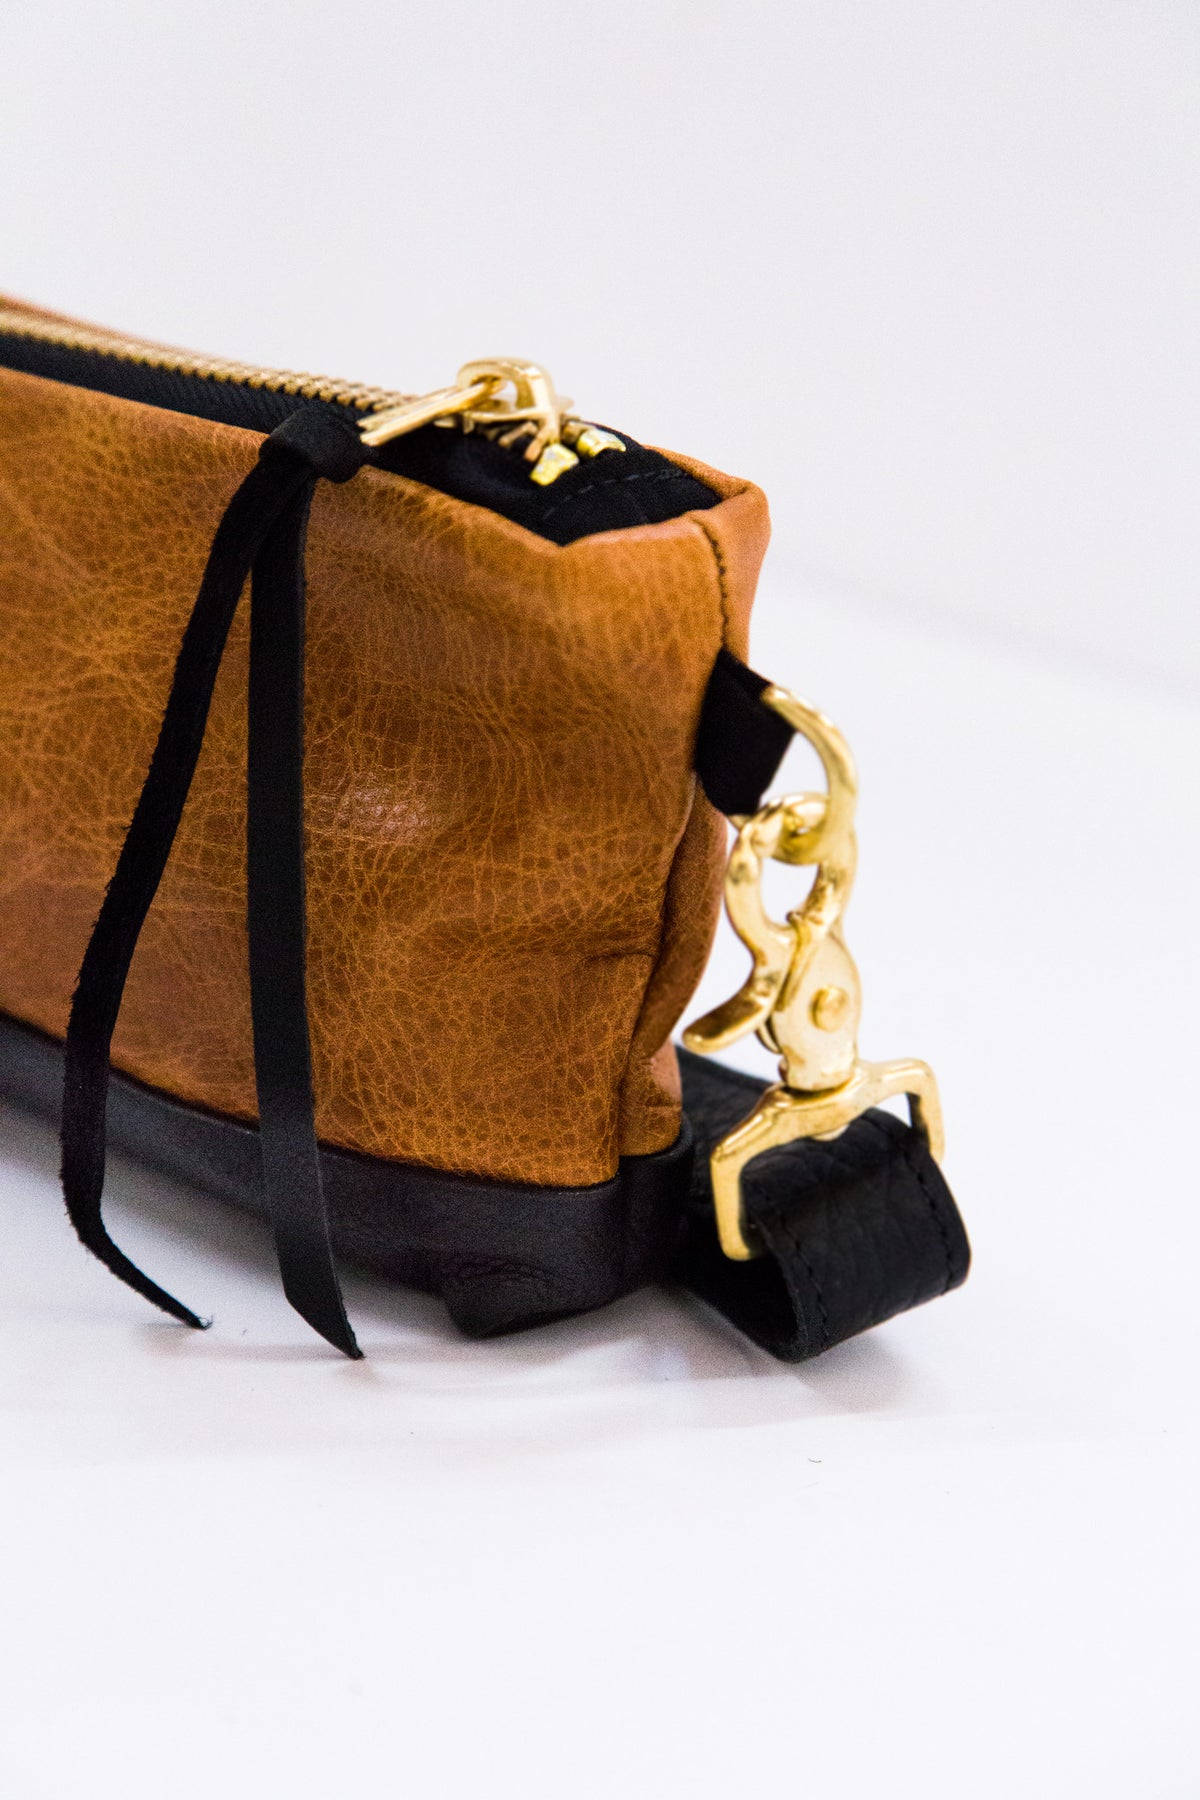 The Mini Vida Fanny Pack - Kaia - Rais Case - Image 2